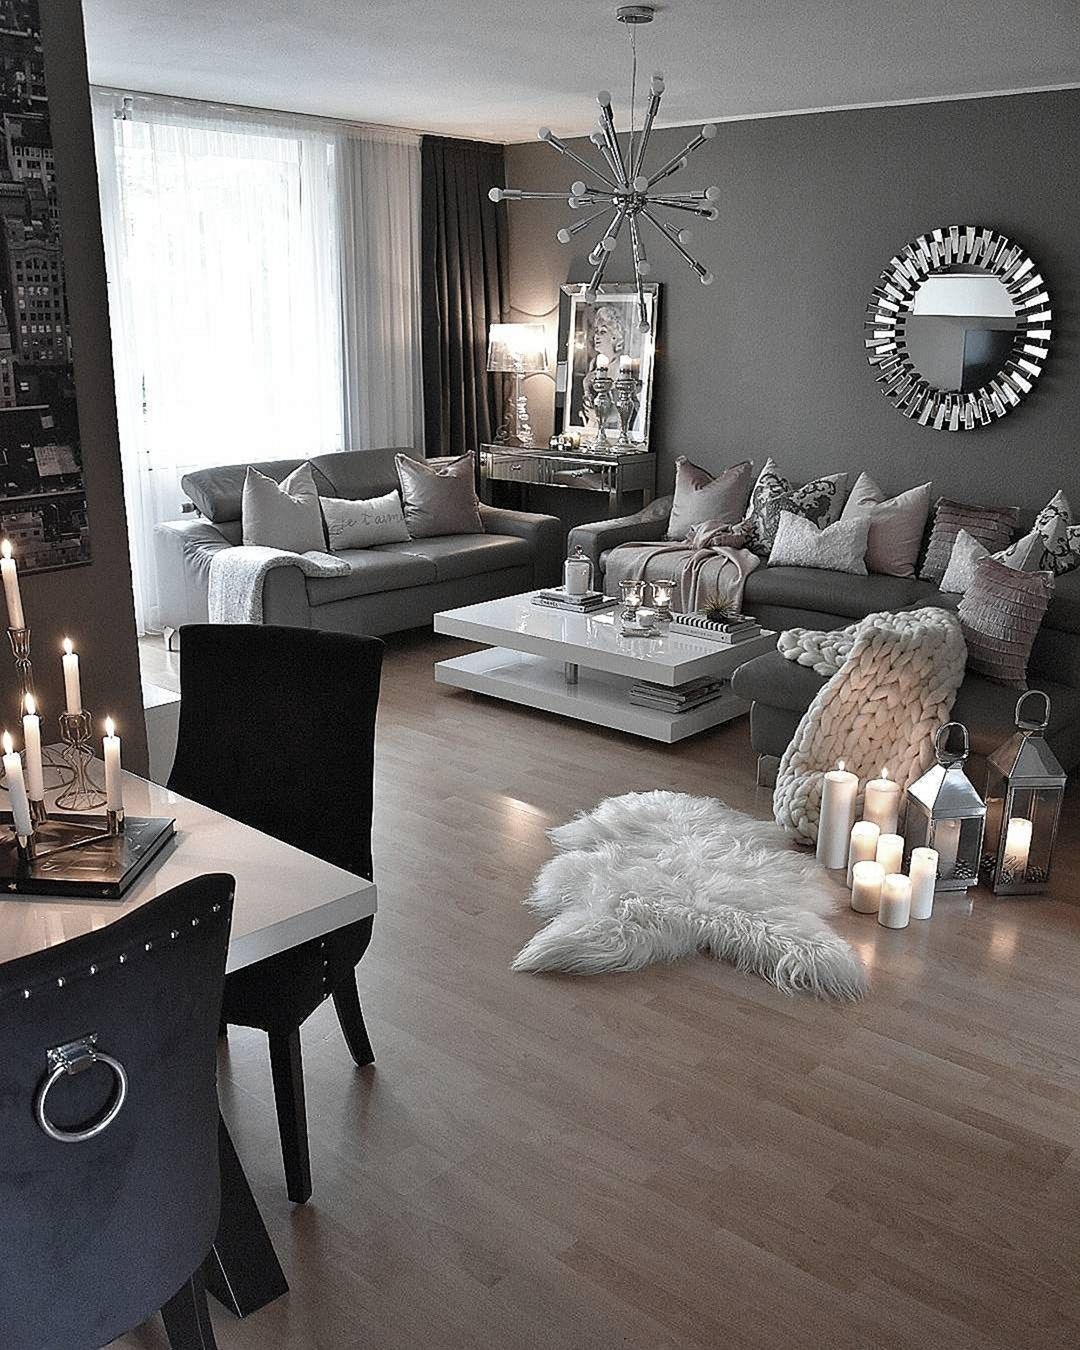 40 Best Black And White Interior Design Ideas Freshouz Com Cozy Apartment Decor Farm House Living Room Living Room Designs